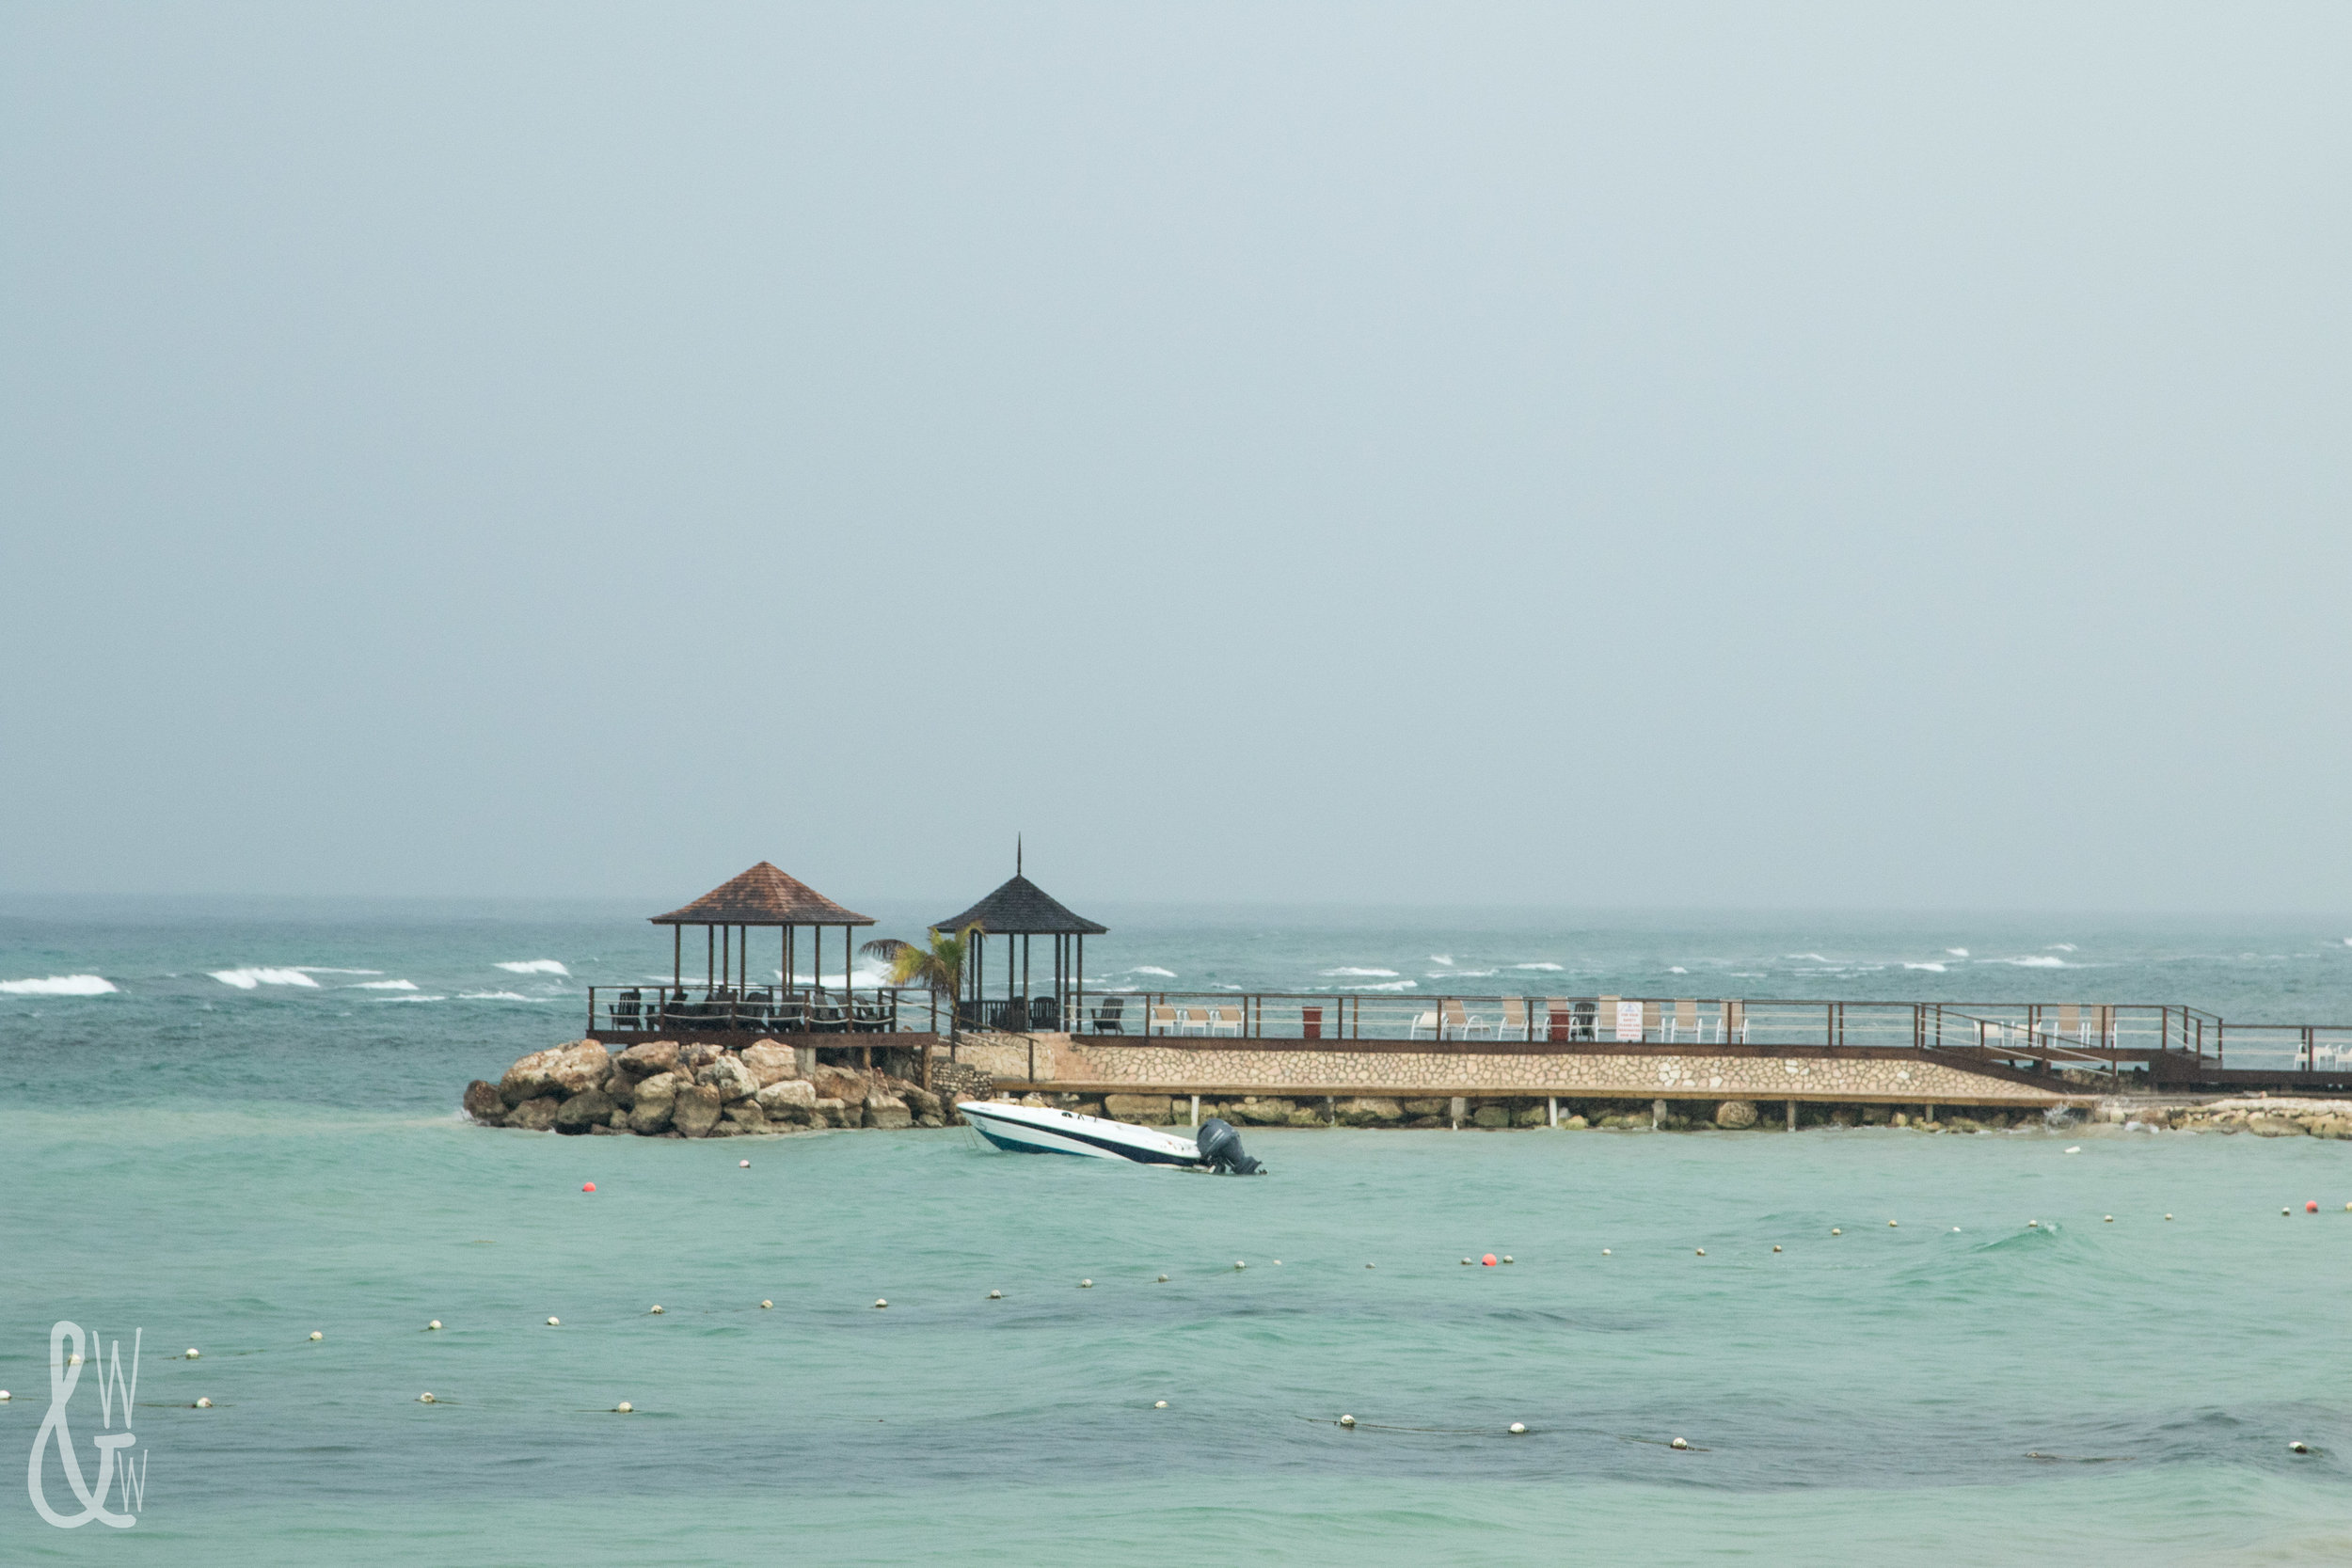 Pier at Montego Bay, Jamaica